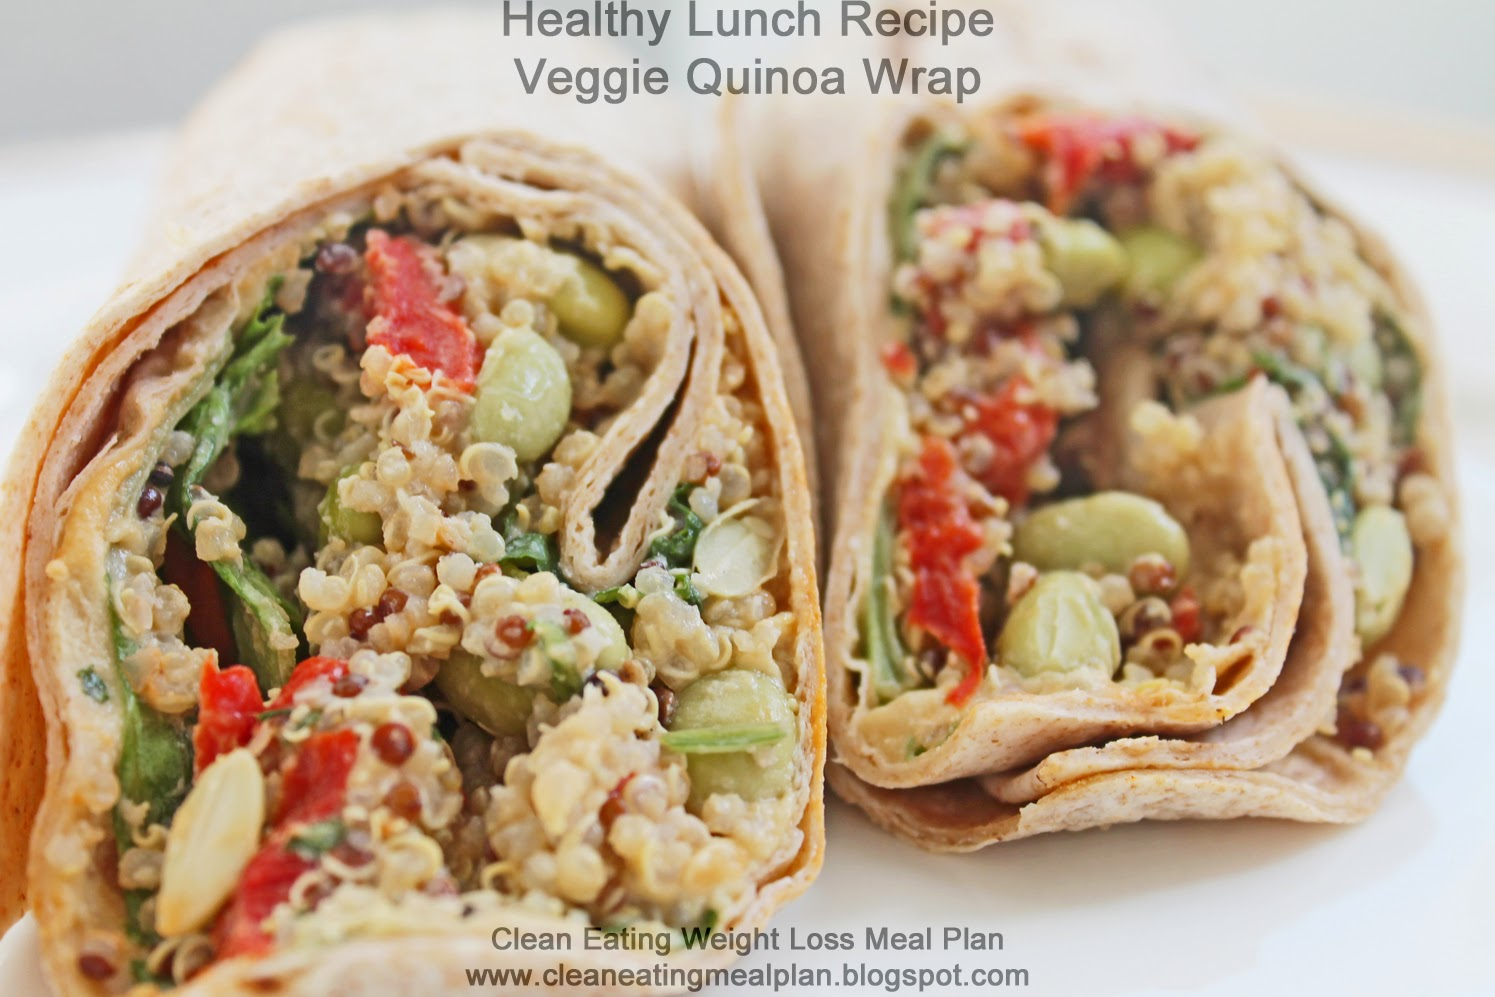 Veggie Wraps May Be One Of The Easiest Healthy Lunch Recipes To Make But Do They Taste Good